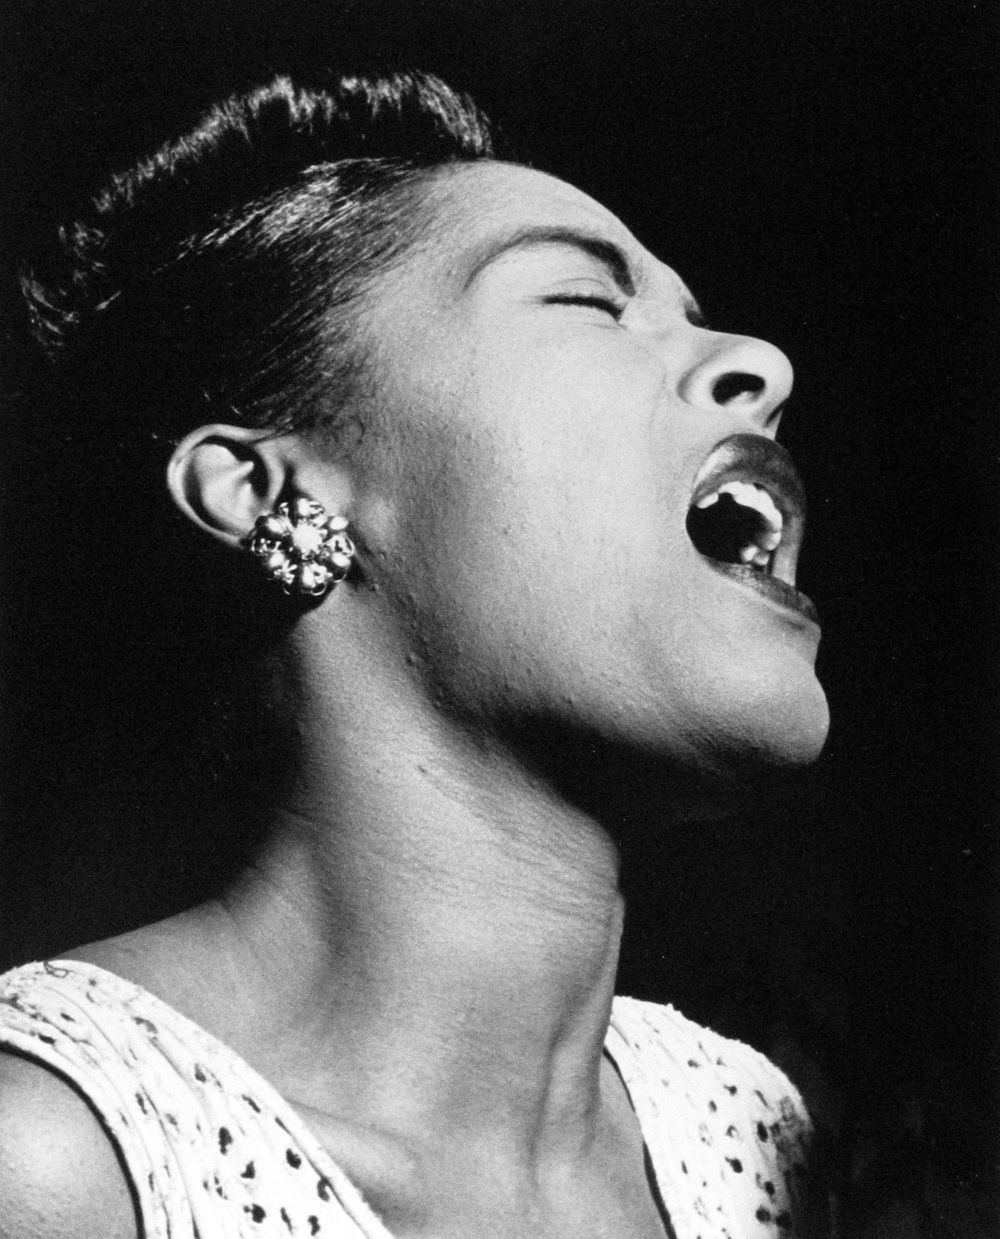 William P. Gottlieb, Billie Holiday, c.1947, courtesy of the estate of William P. Gottlieb